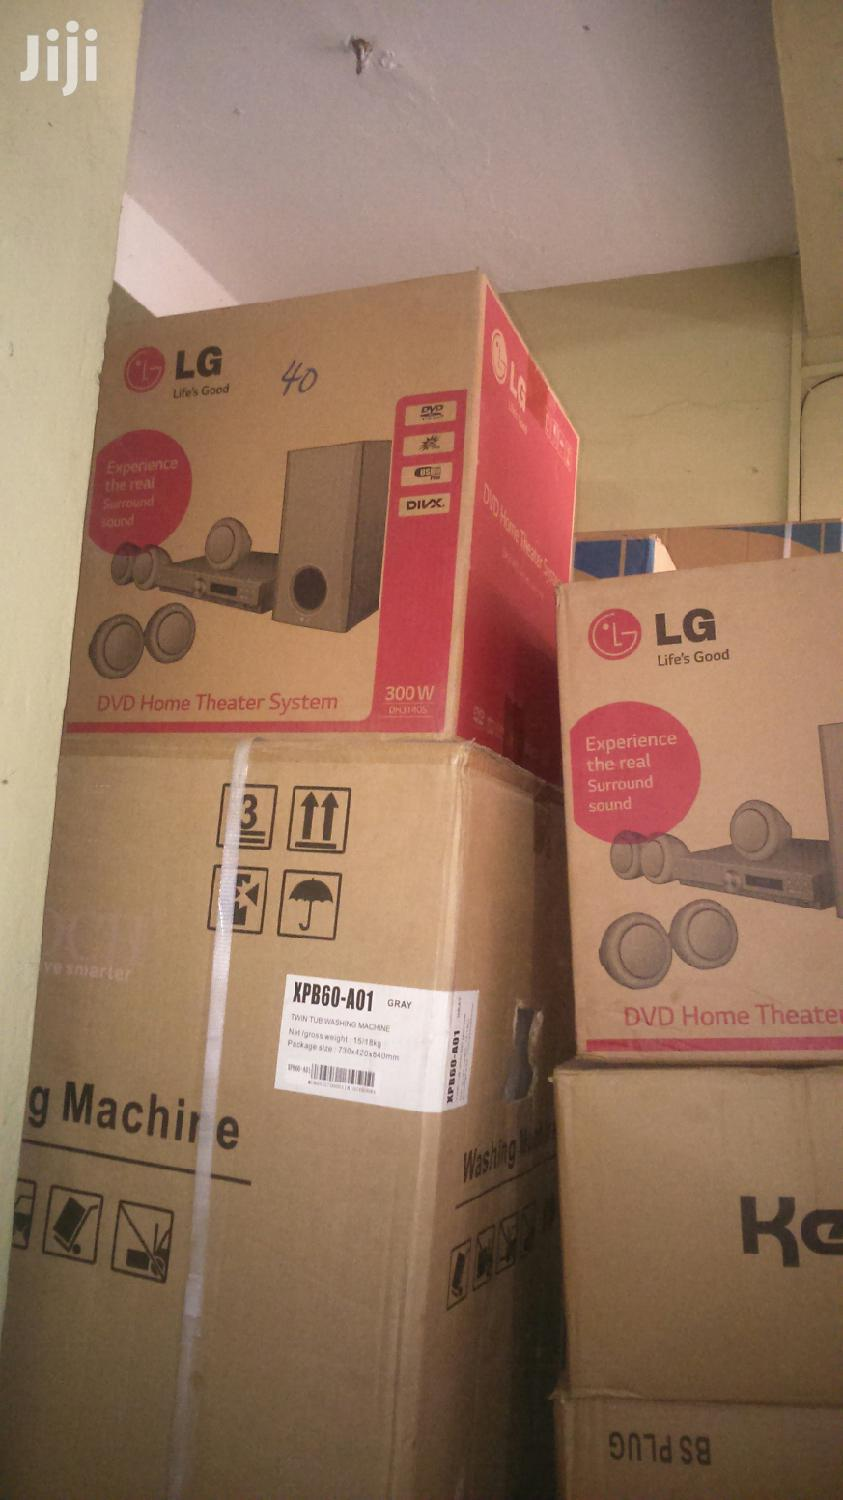 Experience the Real Sound LG 300W DVD Home Theater System